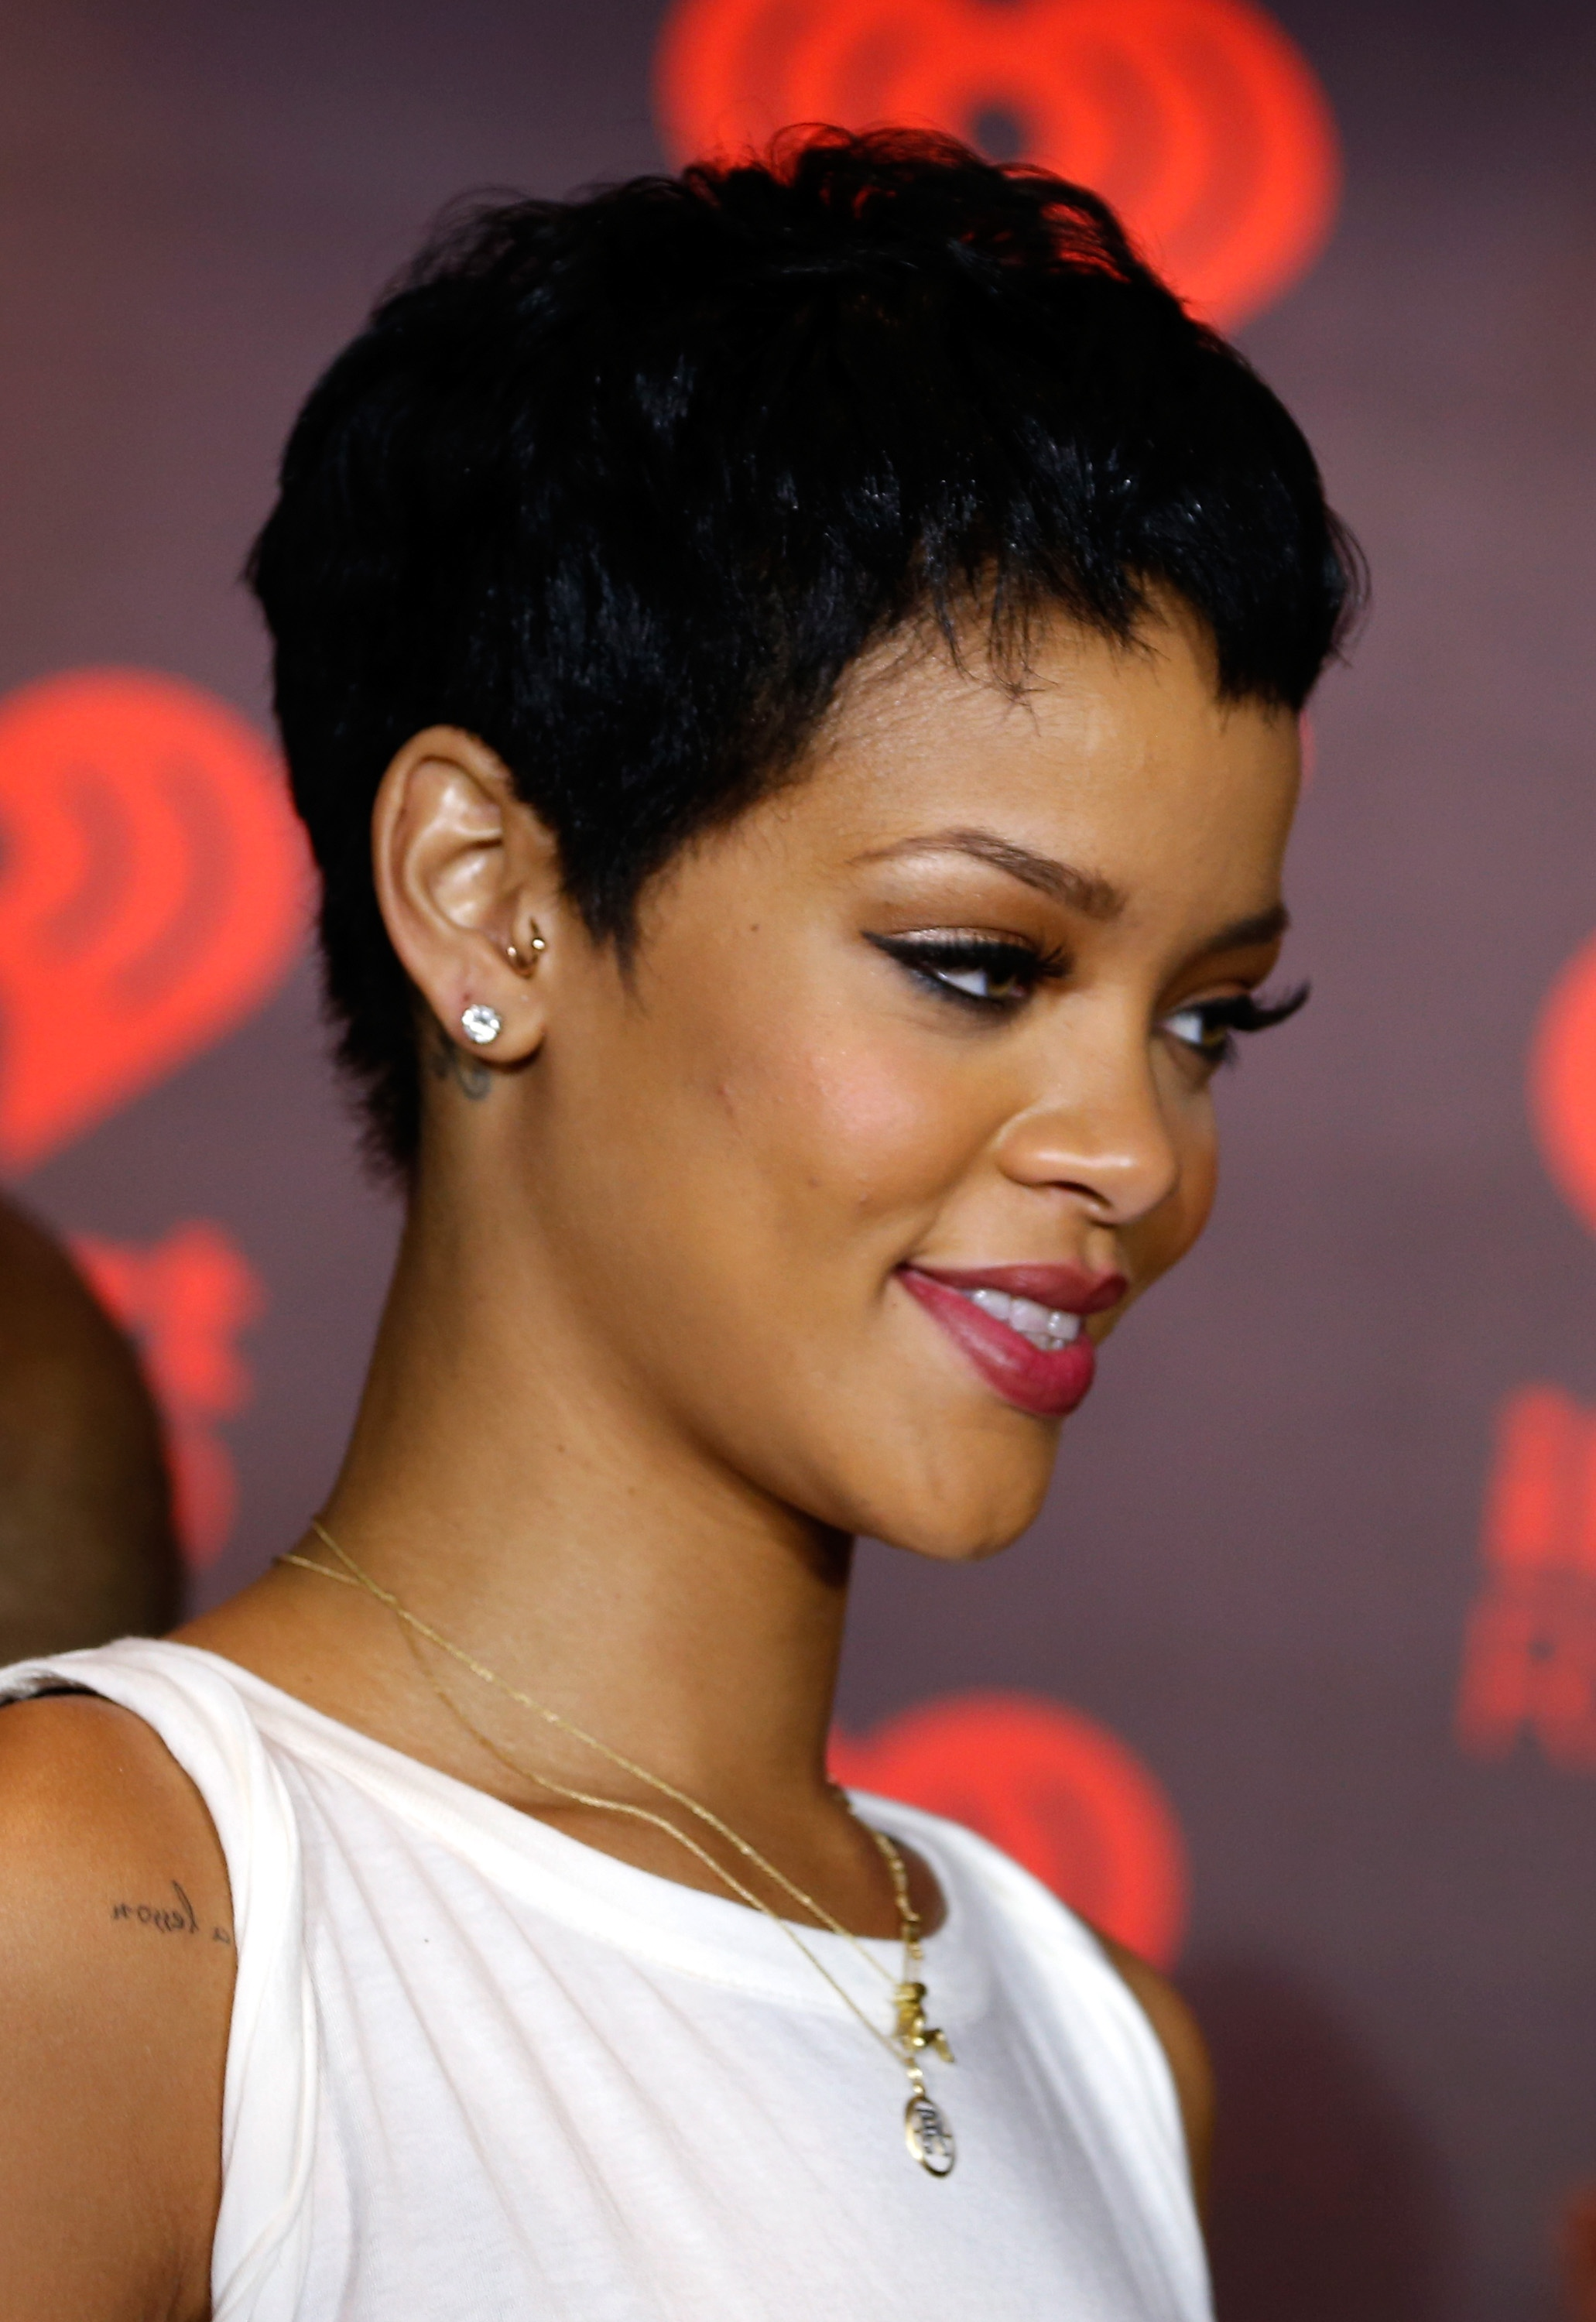 LAS VEGAS, NV - SEPTEMBER 21: Singer Rihanna appears backstage during the 2012 iHeartRadio Music Festival at the MGM Grand Garden Arena on September 21, 2012 in Las Vegas, Nevada. (Photo by Christopher Polk/Getty Images for Clear Channel)